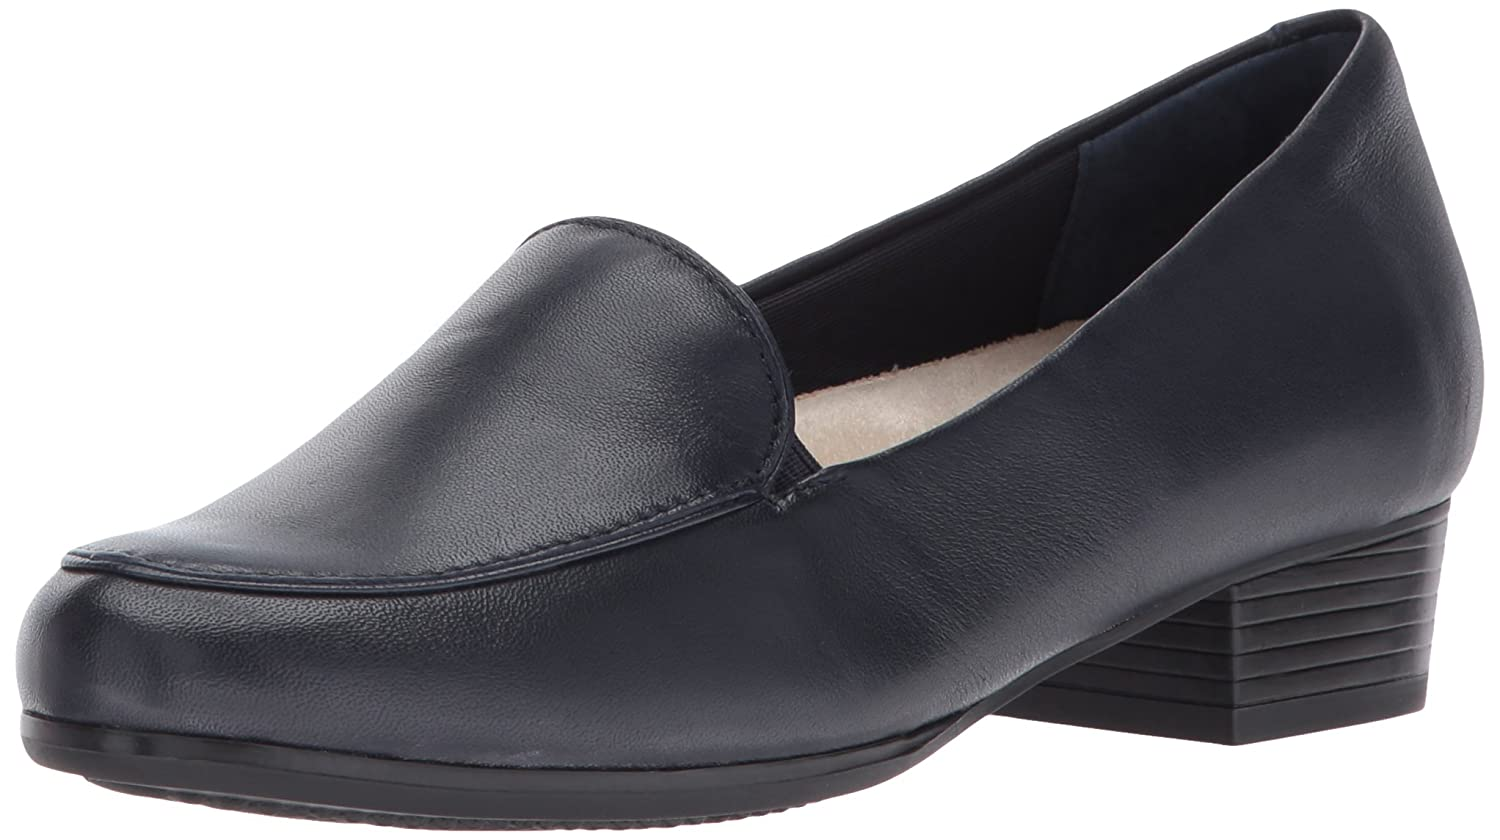 Trotters Women's Monarch Flat B01N7KX8X1 10.5 B(M) US|French Navy